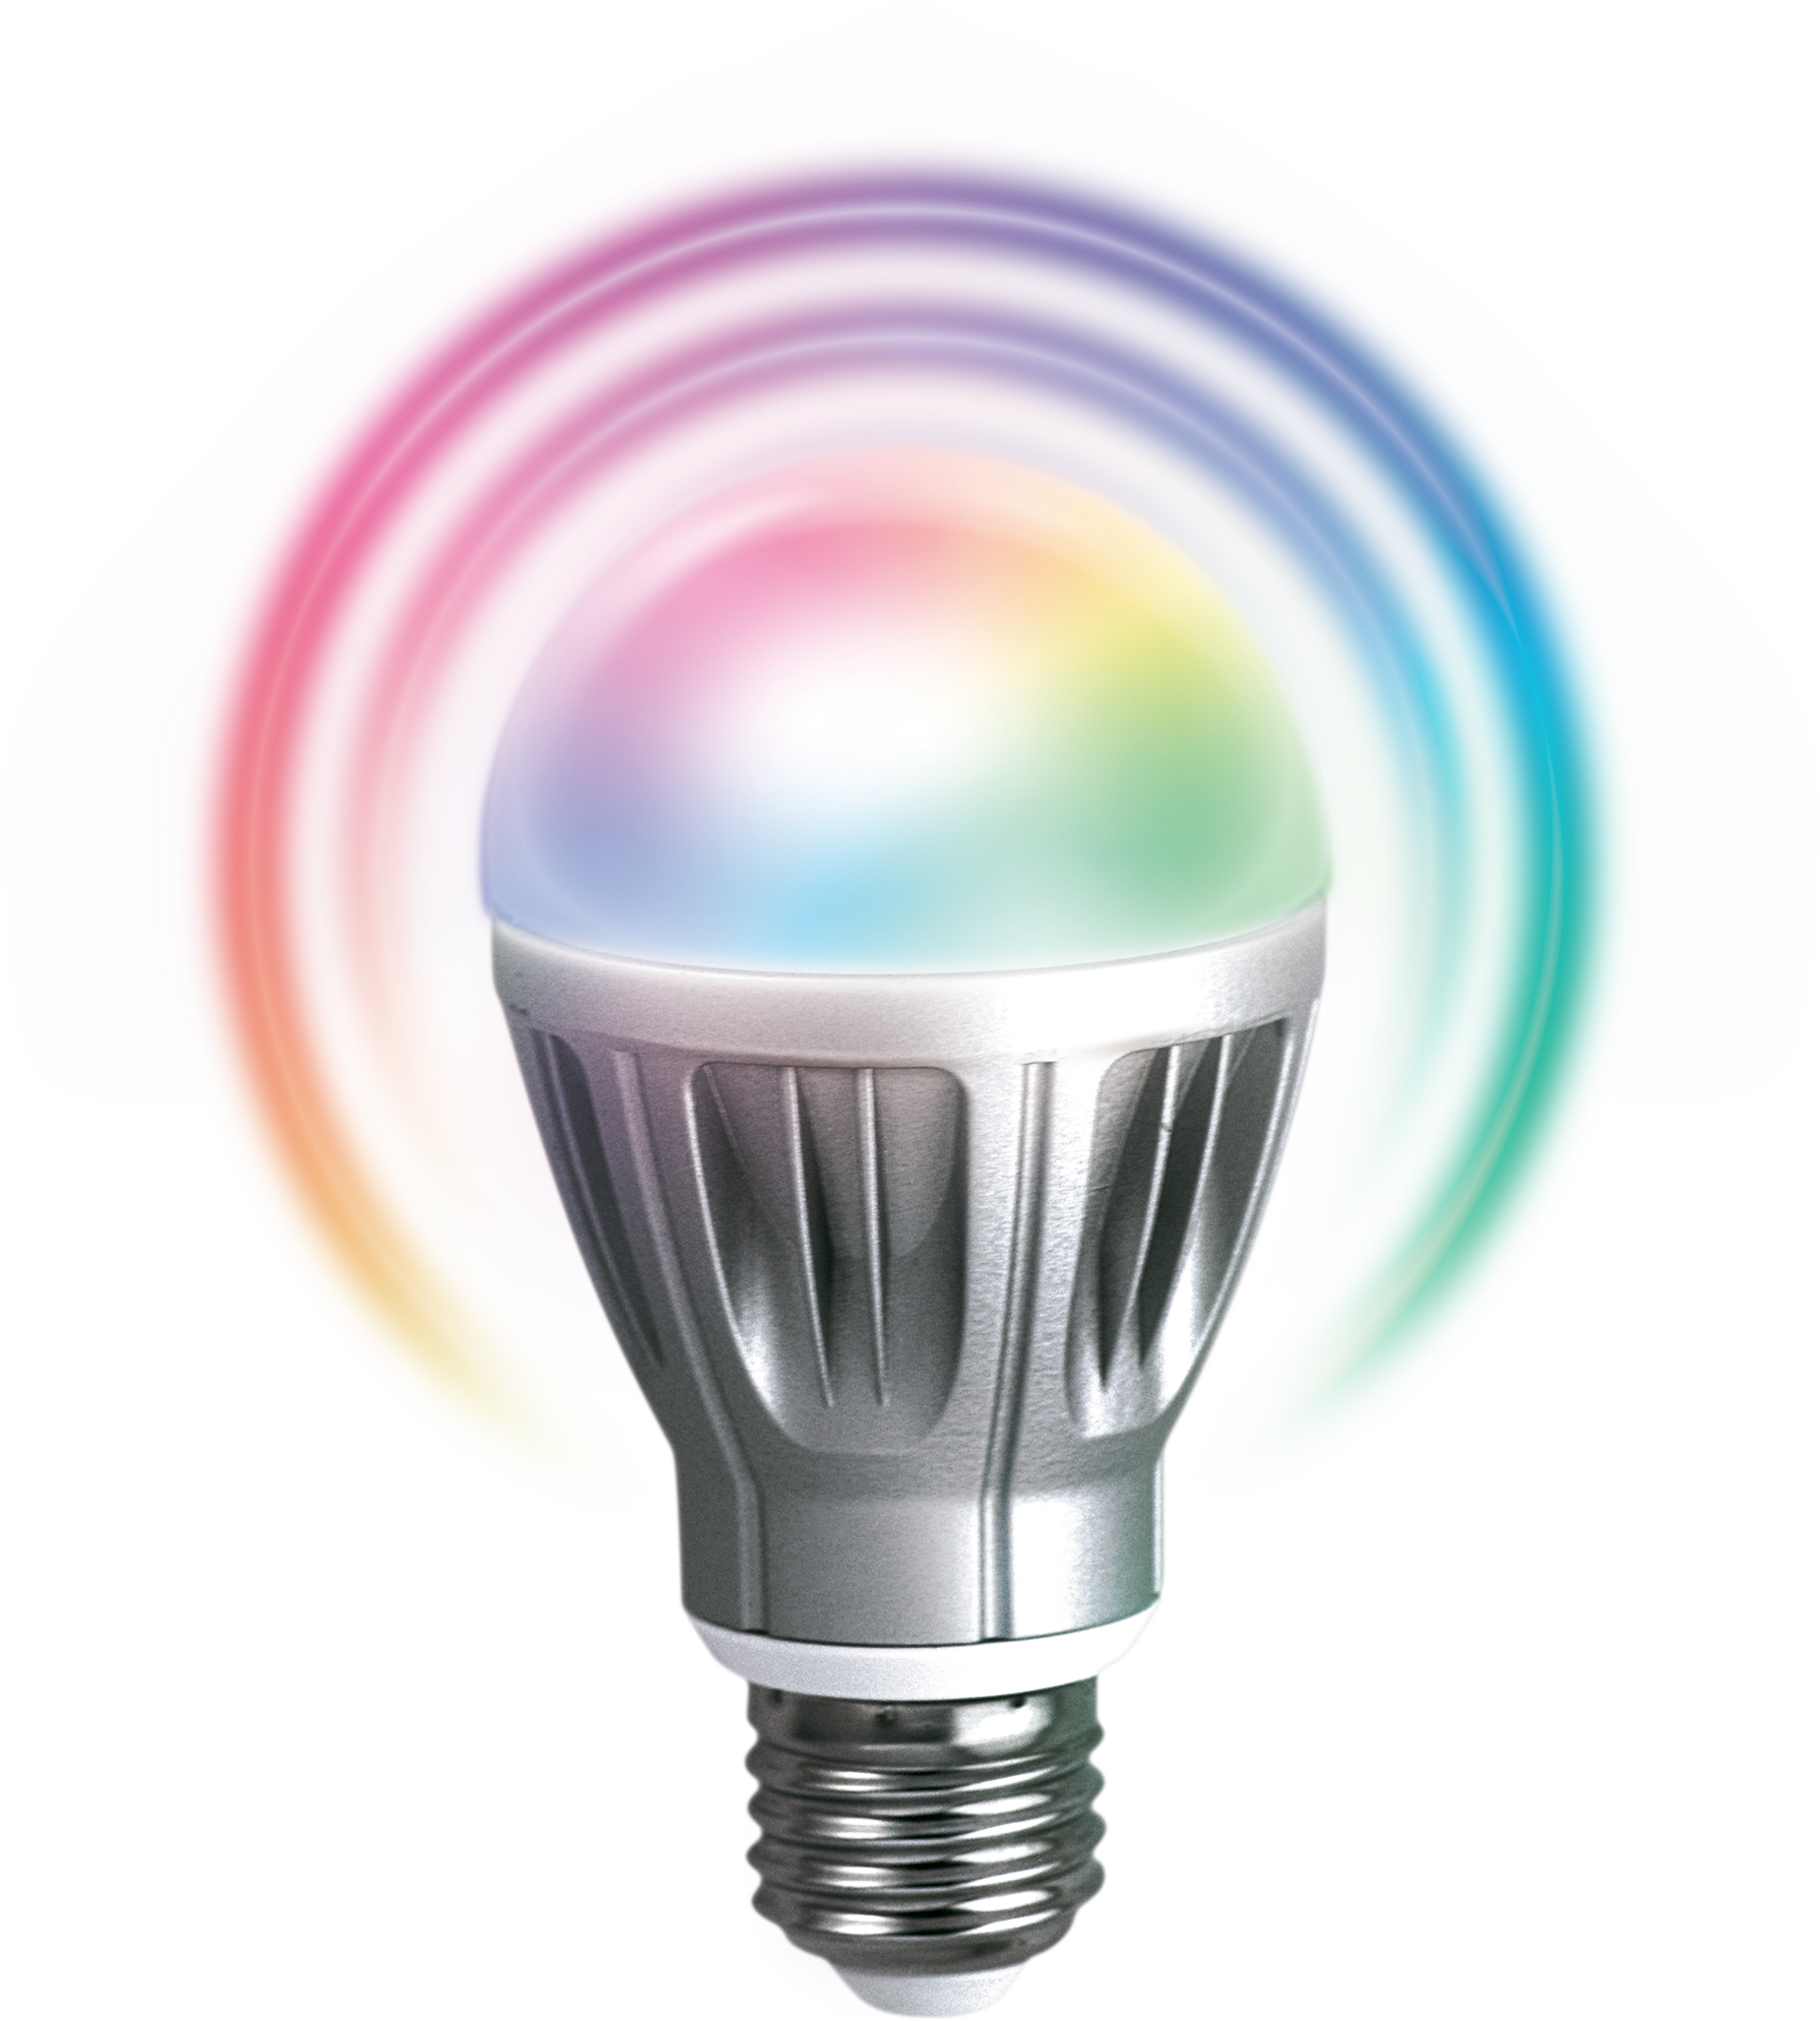 Zipato rgbw led z wave 6 7 watt bulb with 5 color channels for Colored light bulbs